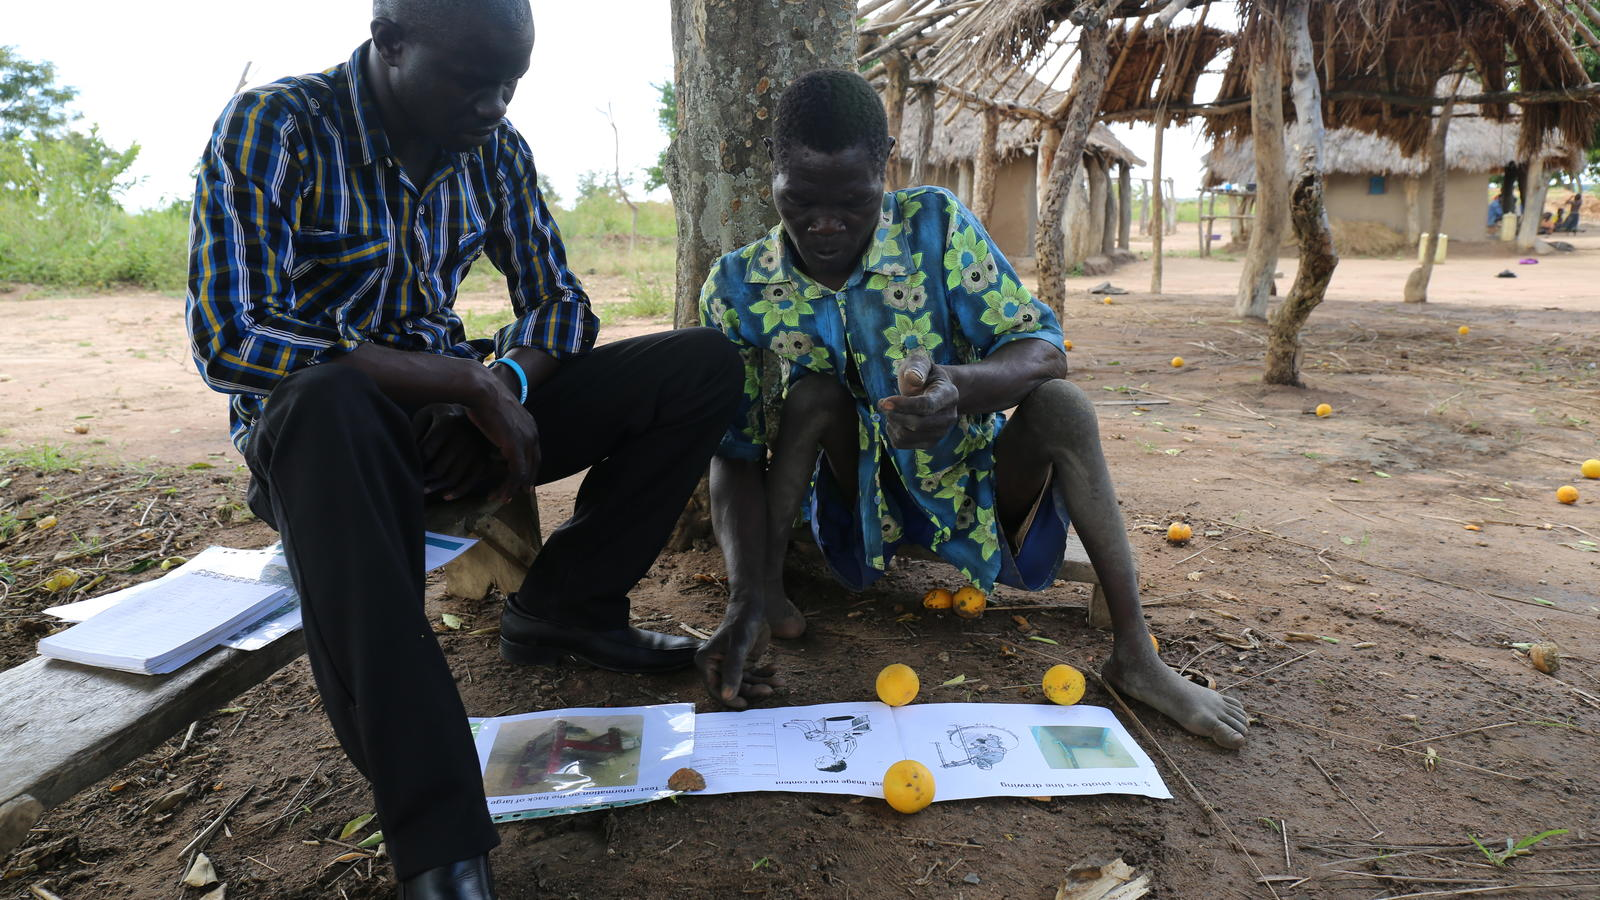 Olupot Martin, right, who has polio, works on inclusive water point designs in Abibico, Uganda